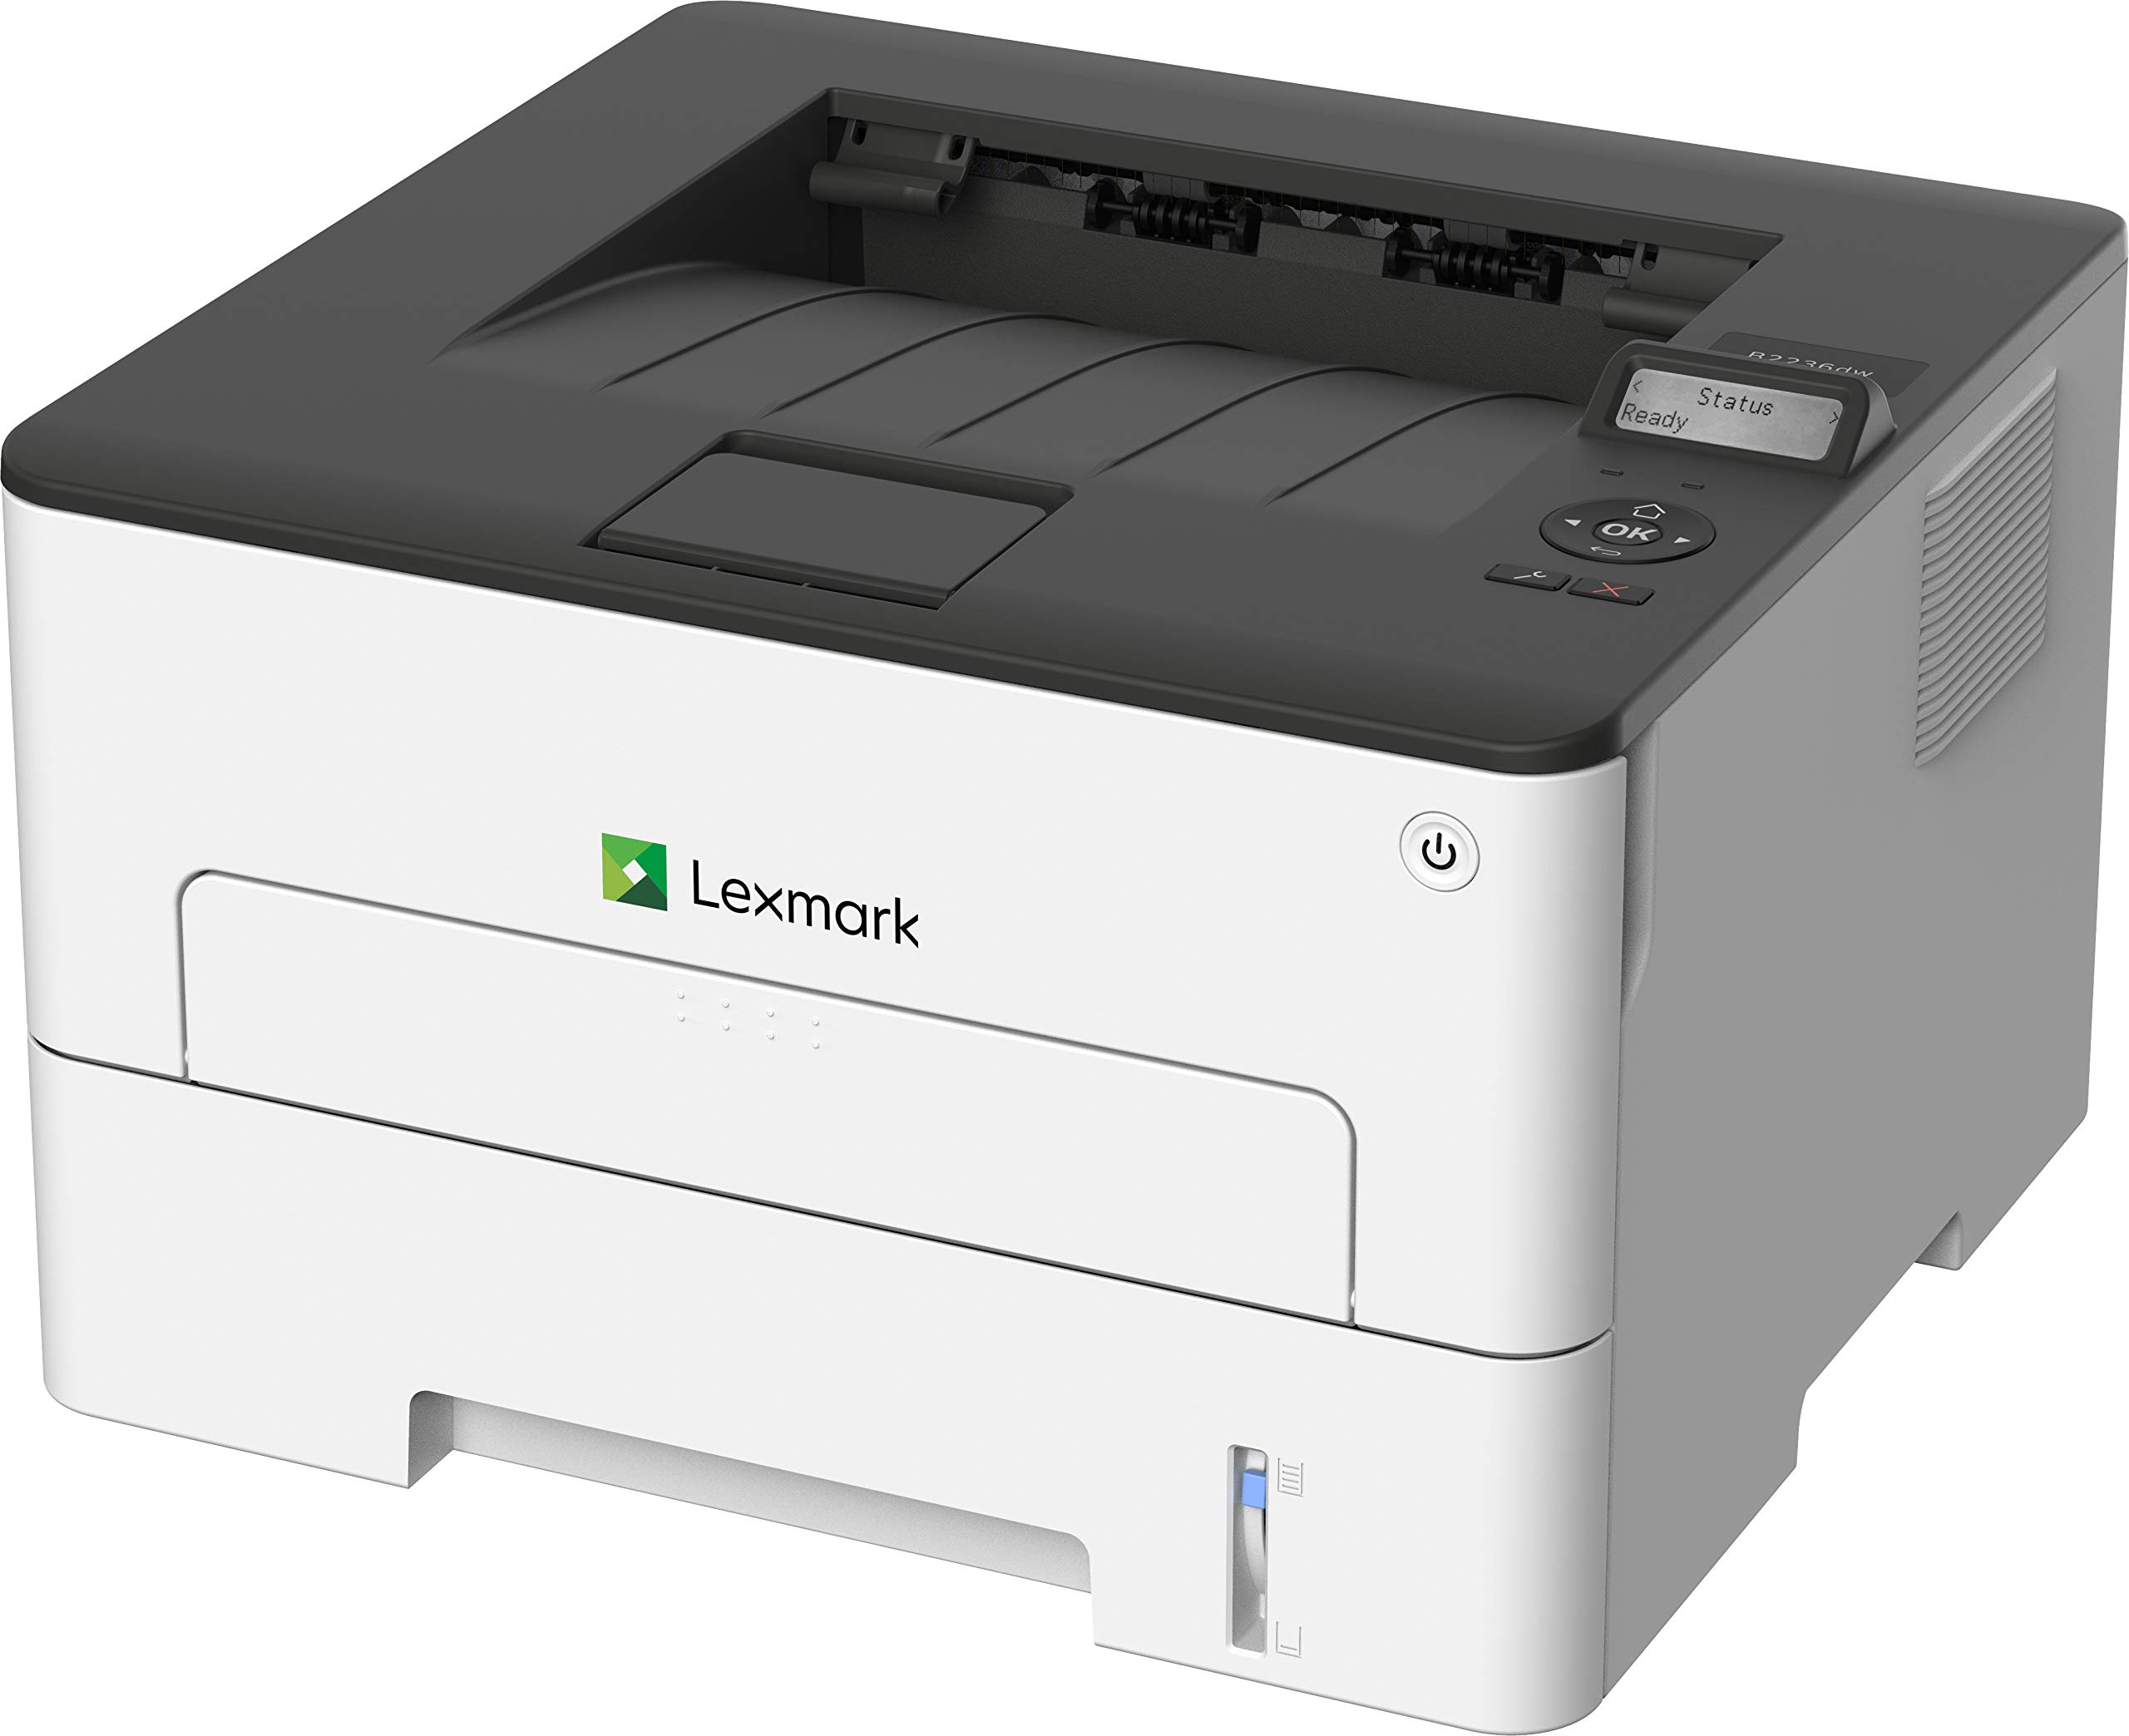 Lexmark B2236dw Monochrome Compact Laser Printer, Duplex Printing, Wireless Network Capabilities (18M0100) by Lexmark (Image #3)